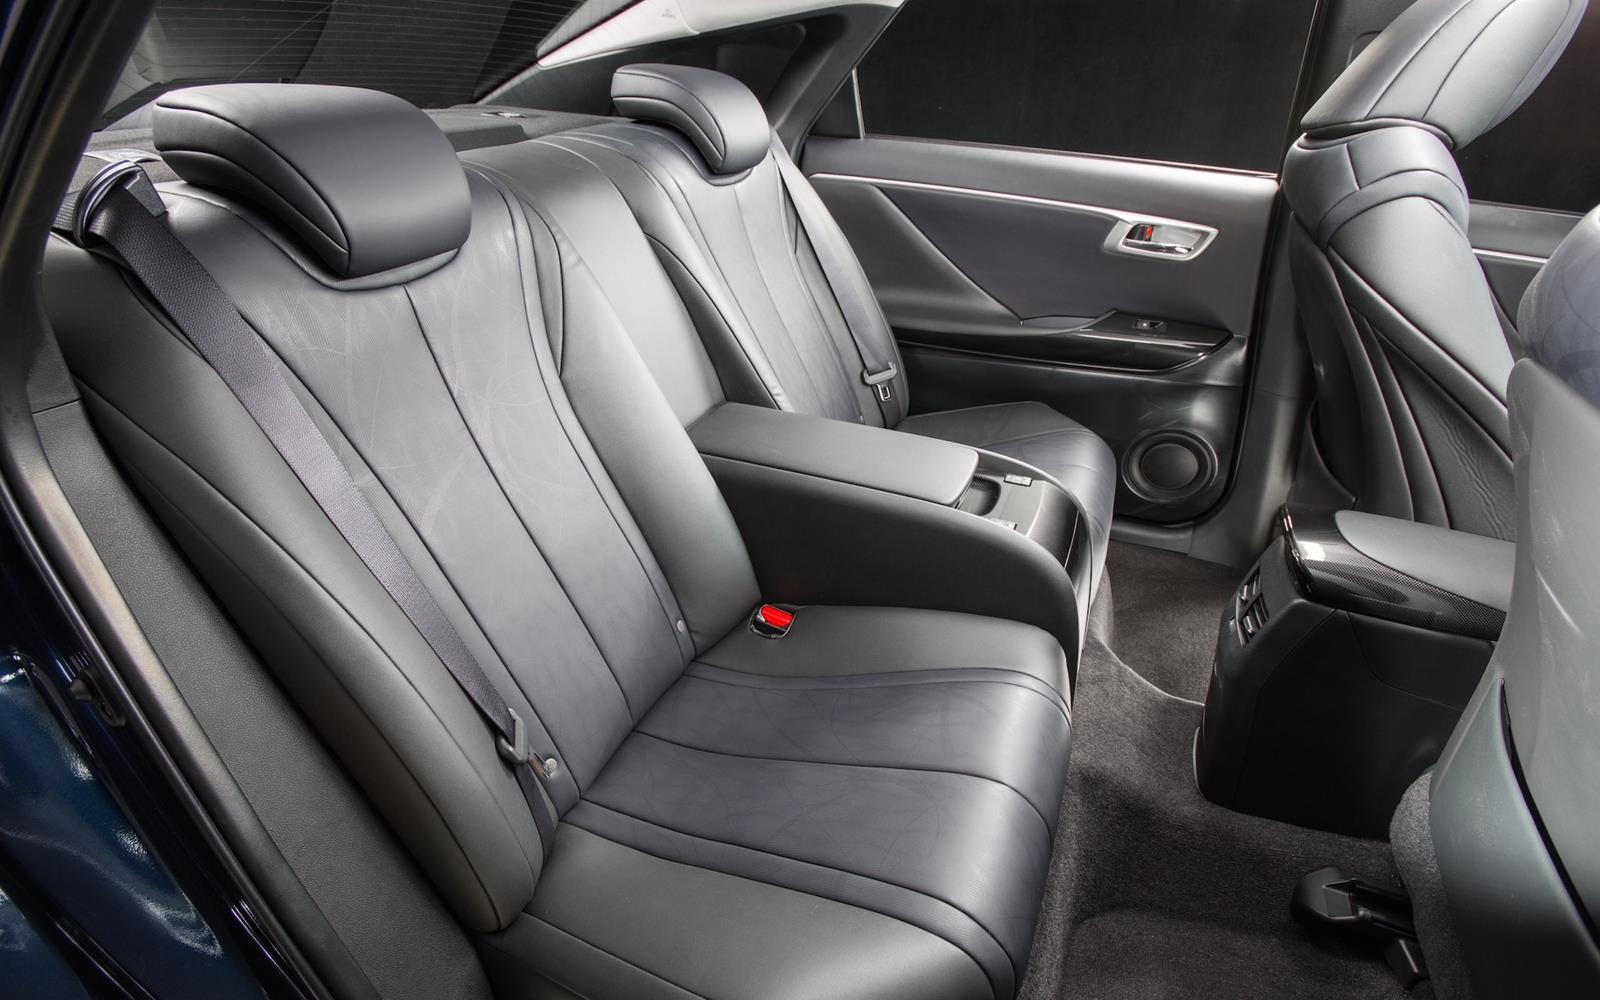 Toyota Mirai 2015 Interior Rear Seats